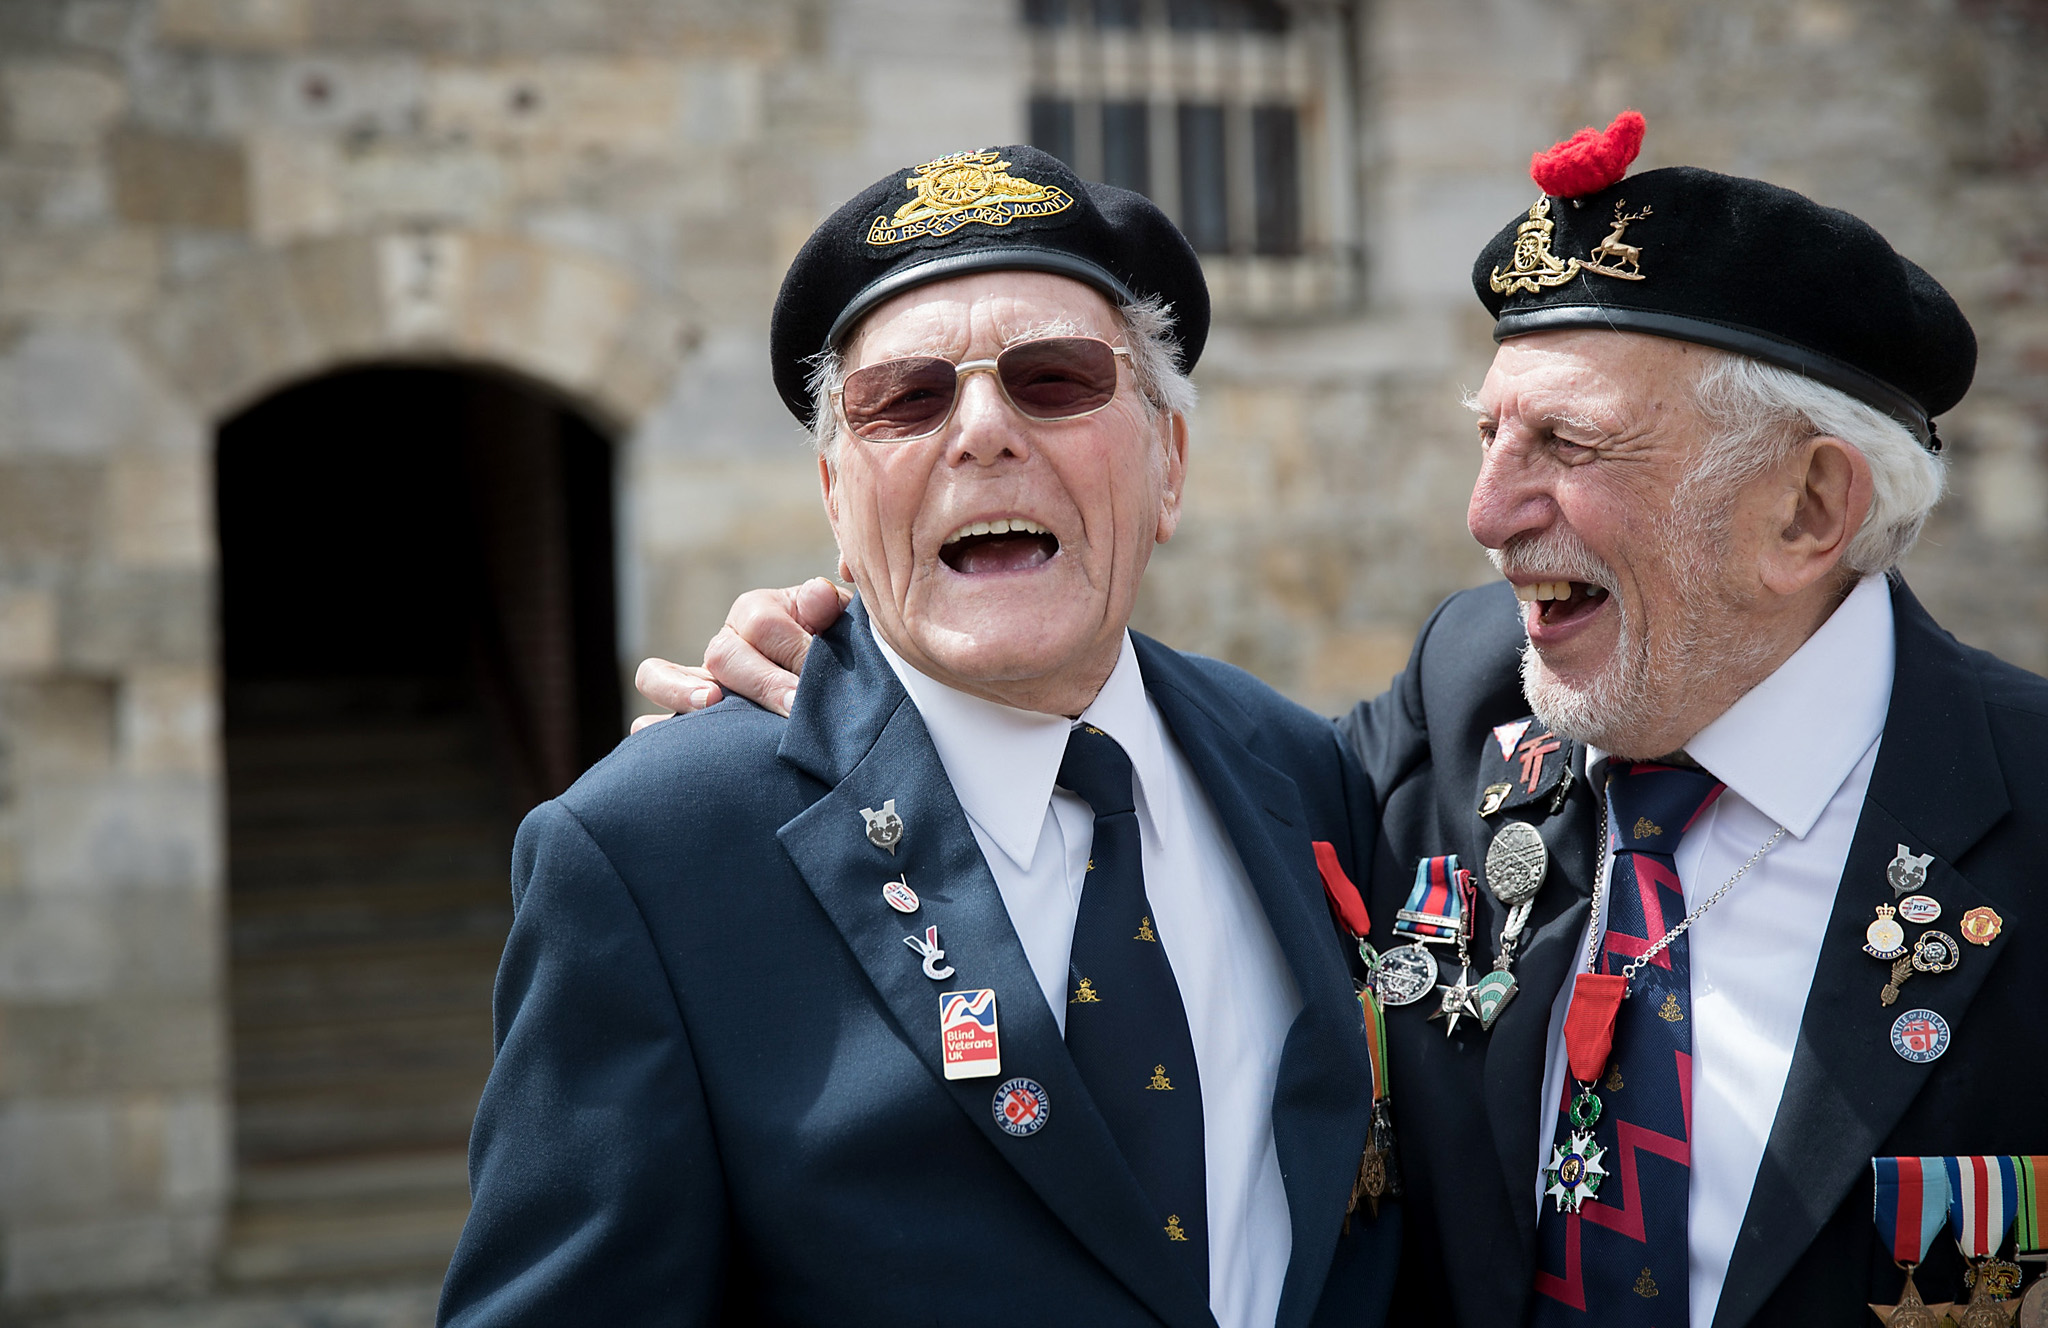 PORTSMOUTH, ENGLAND - MAY 20:  World War II veterans Denys Hunter, 92 (L) and Joe Cattini, 93, (R) laugh as they are photographed after being award France's highest honour, The Legion D'Honneur, in recognition of their part in the liberation of France at the D-Day Museum on May 20, 2016 in Portsmouth, England. The pals, who were both in the 86th Field Regiment of the Hertfordshire Yeomanry Royal Artillery and landed on Gold Beach on D-Day, were reunited by chance for the first time in 70 years in 2014 when they were both heading off to Normandy for the 70th anniversary of the allied landings. The National Order of the Legion of Honour which was established by Napoleon in 1802, is France's highest decoration and is being awarded to surviving British servicemen as a recognition for their efforts on D-Day in June 1944 that helped lead to the eventual defeat of Nazi Germany in WWII.  (Photo by Matt Cardy/Getty Images)